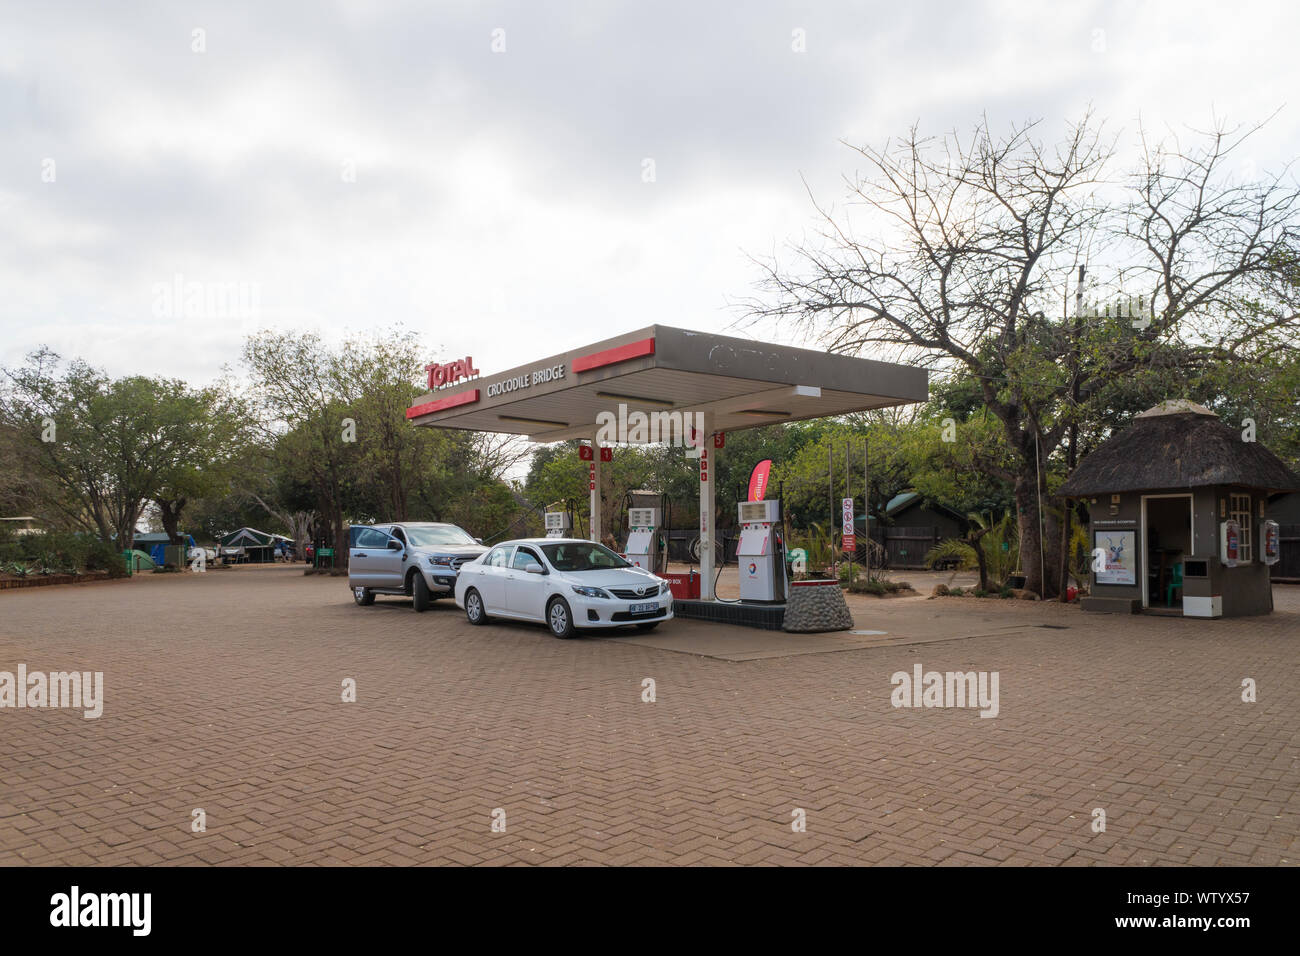 cars or vehicles at a Total petrol or gas station filling up at the petrol pumps at Crocodile Bridge, Kruger National Park, South Africa Stock Photo